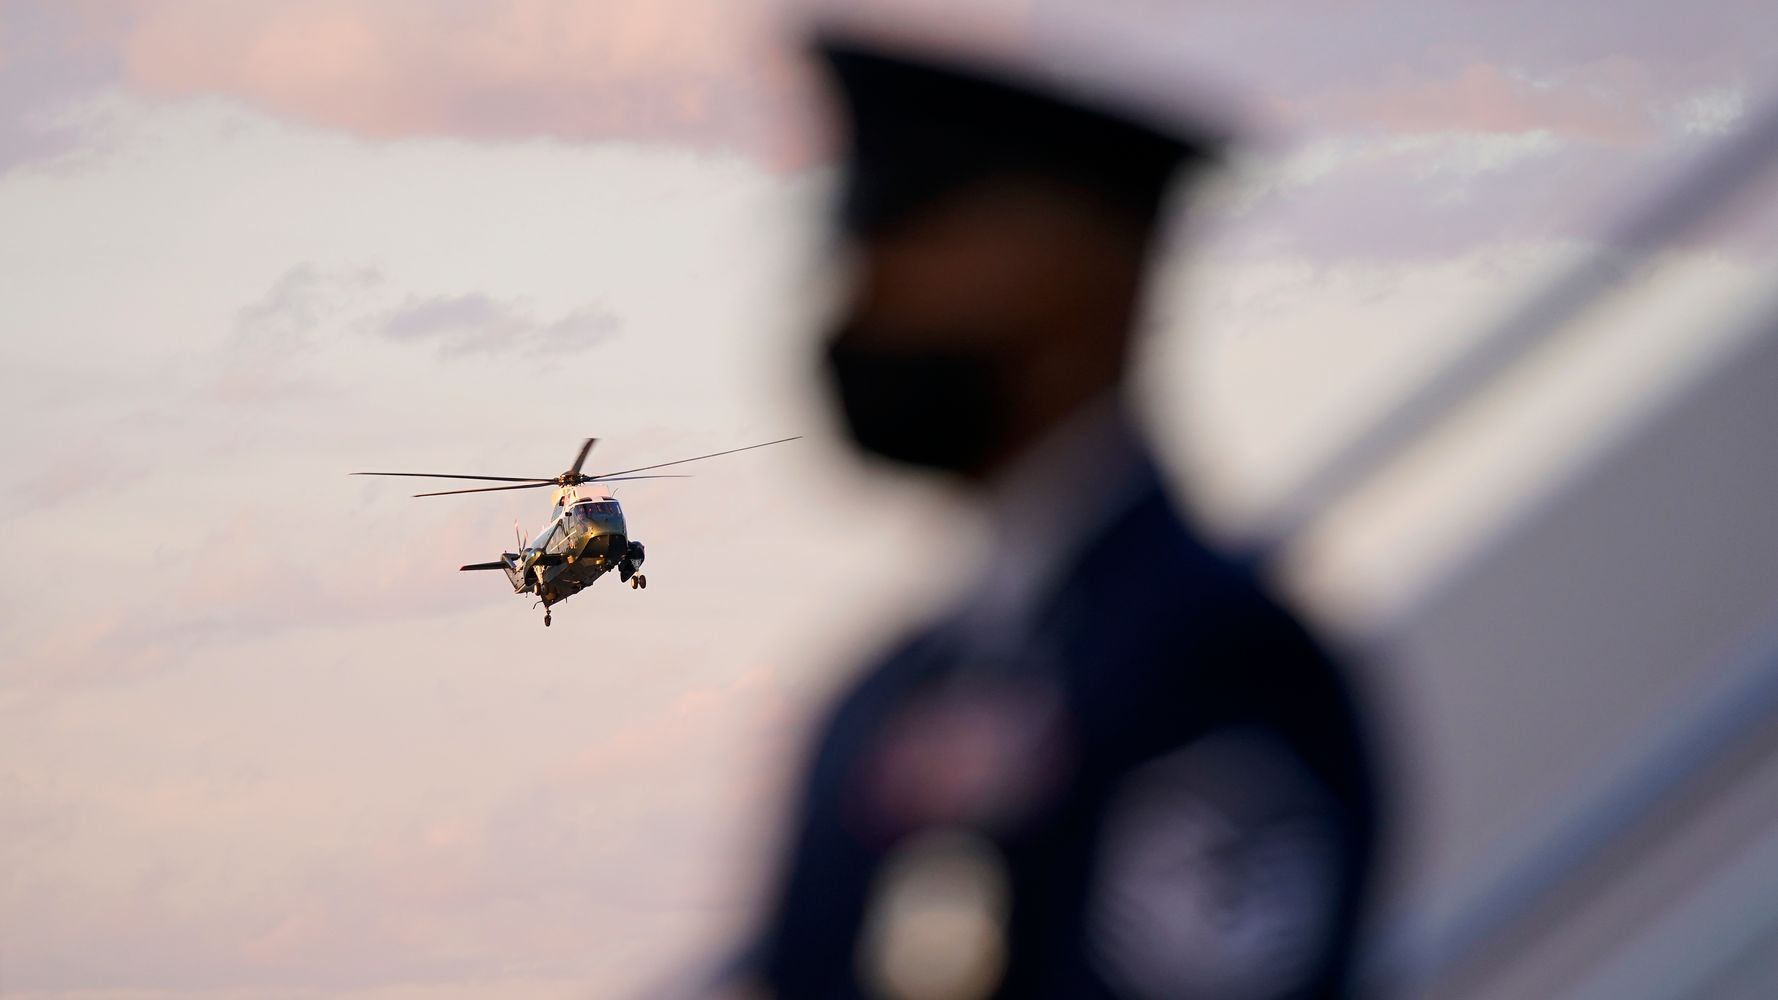 www.huffpost.com: Air Force Orders New Review Into Racial, Ethnic Disparities